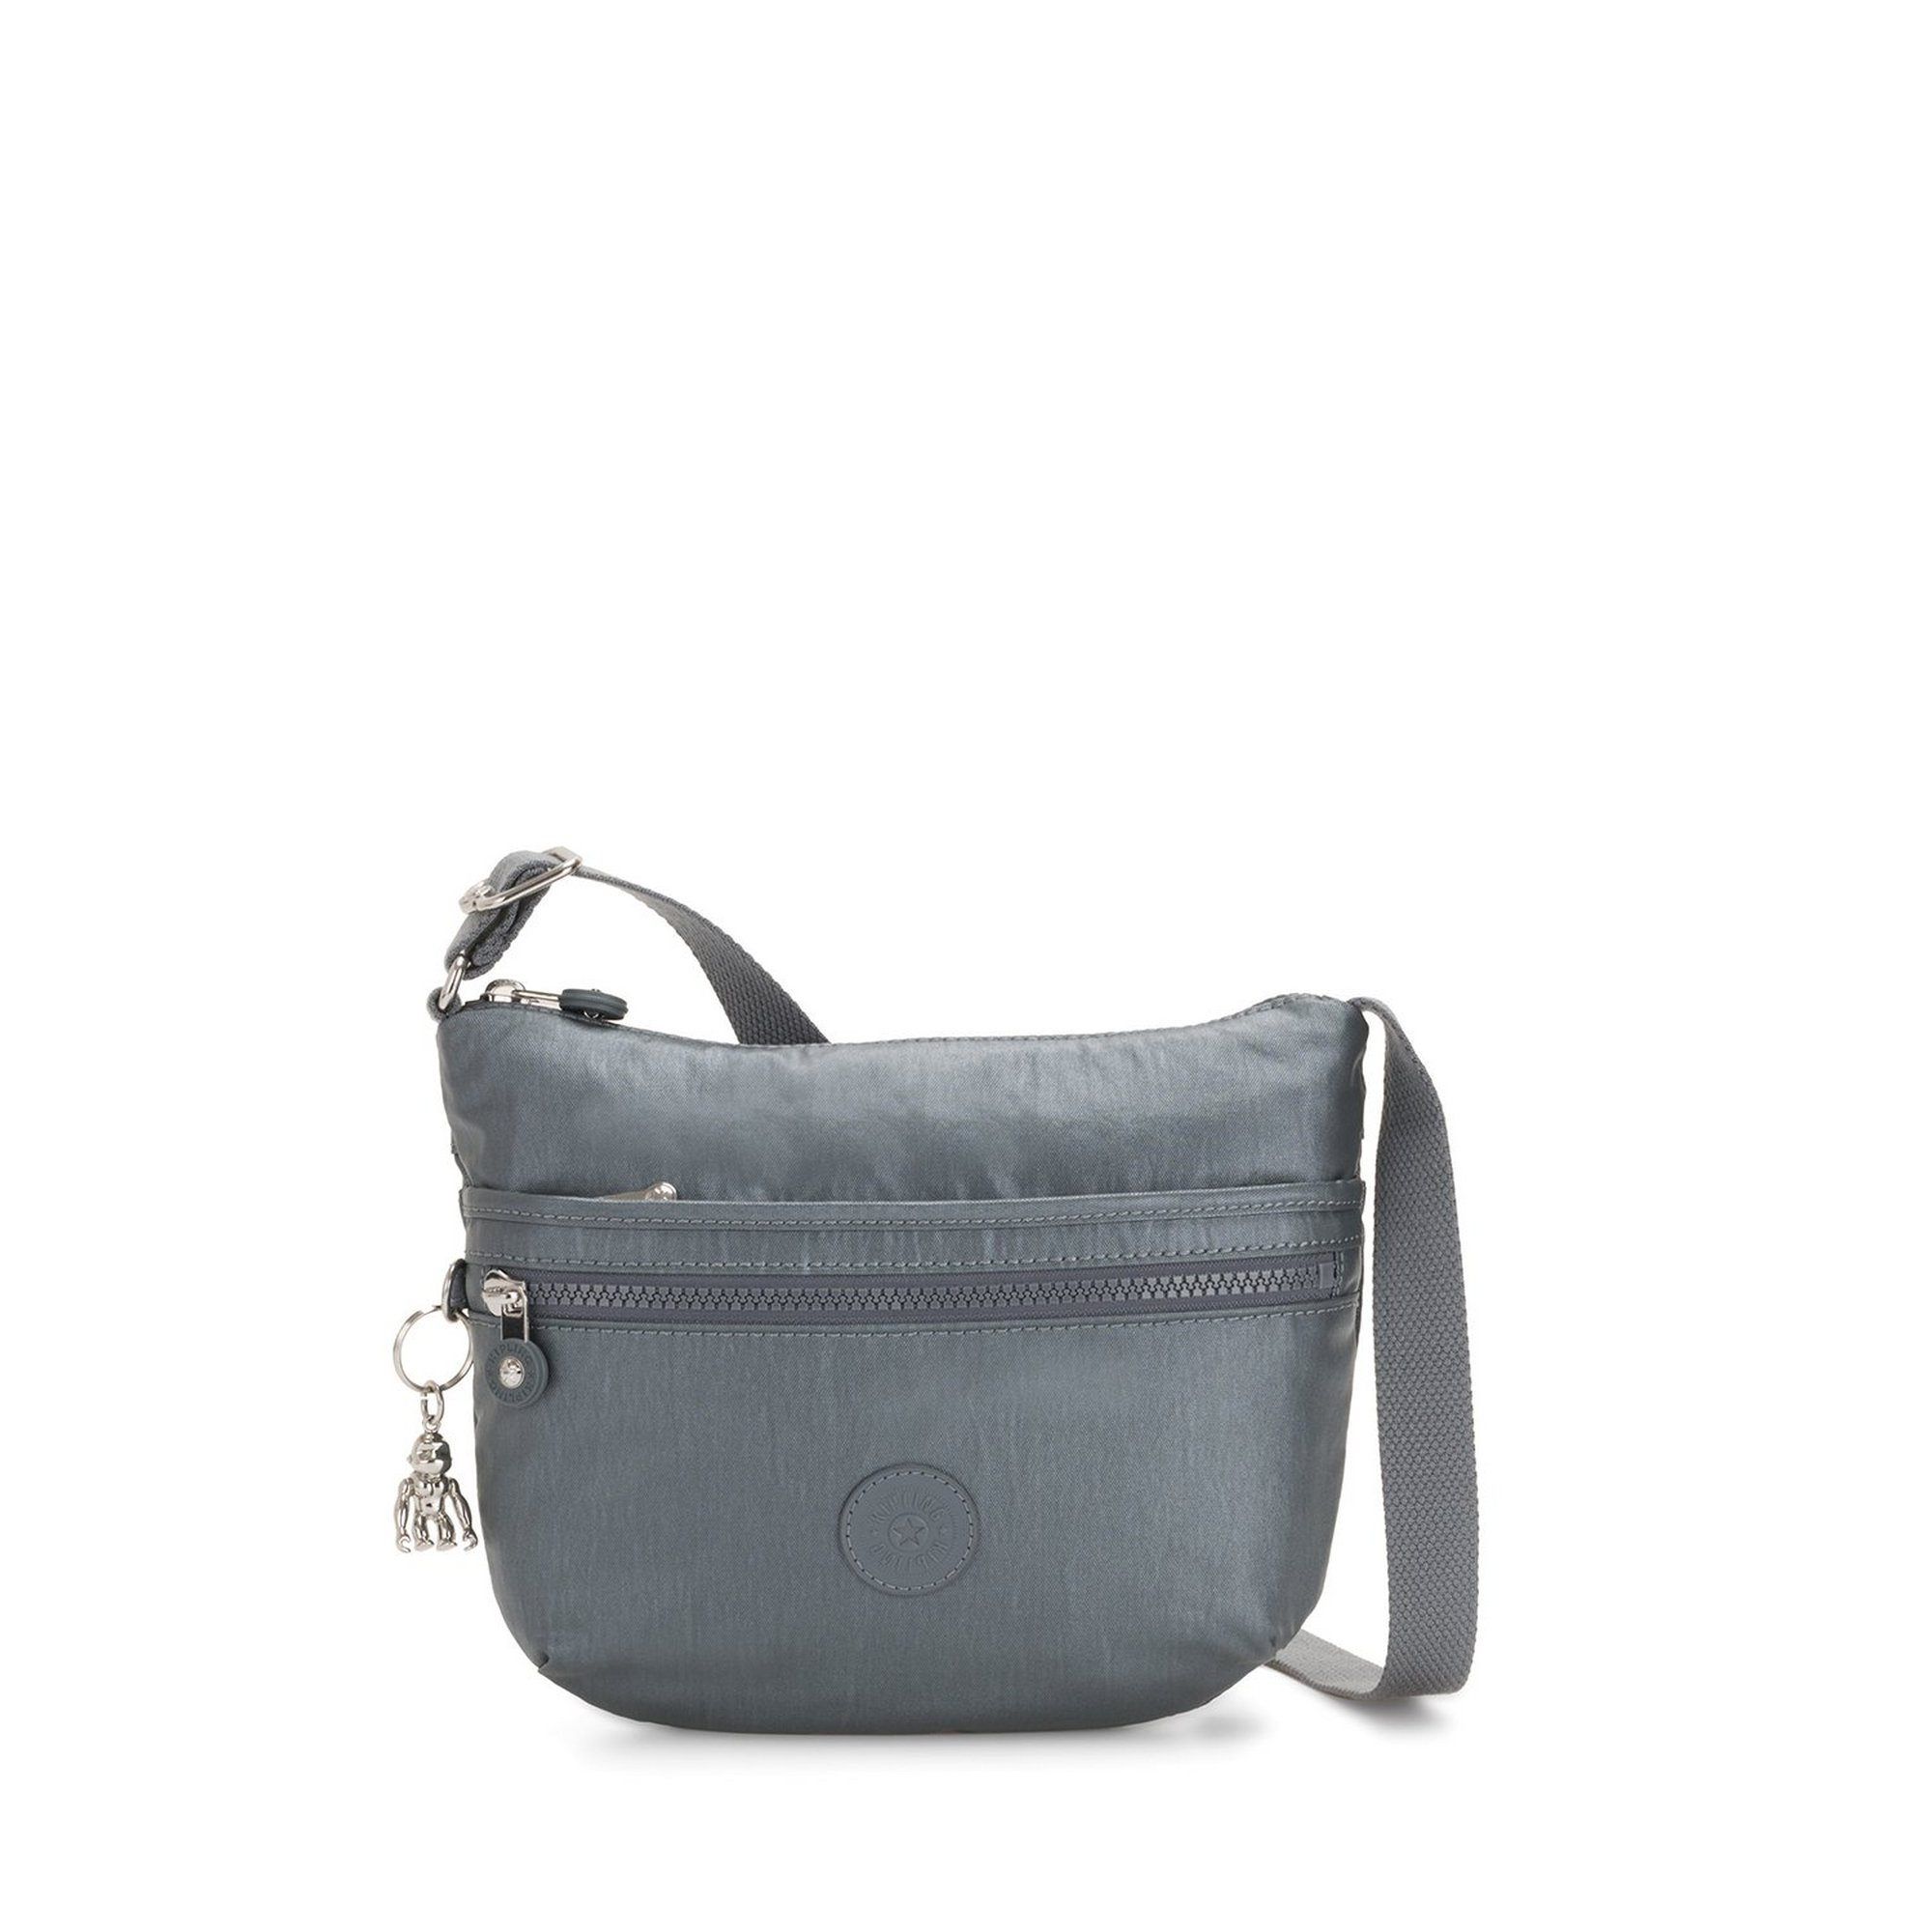 Image of Kipling Arto Cross Body Grey Bag